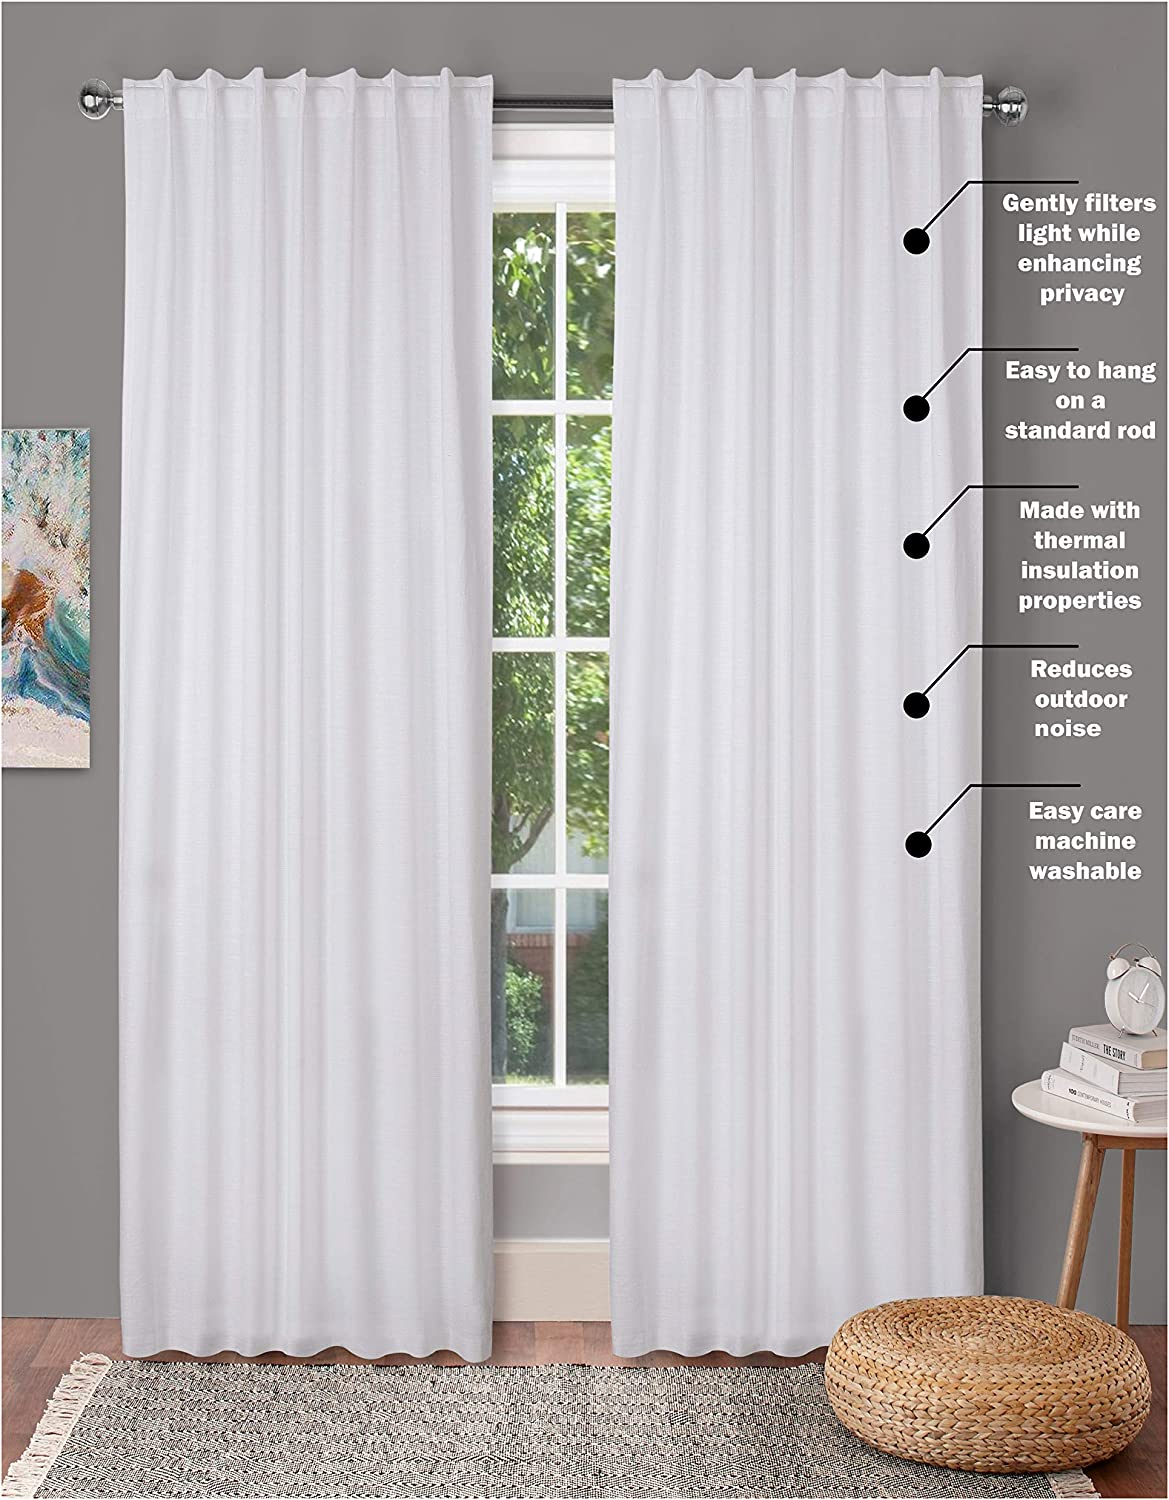 Window Panels Set of 2 Cotton - Fabric 50x96 Curtains Max 40% OFF inTextured Ranking TOP17